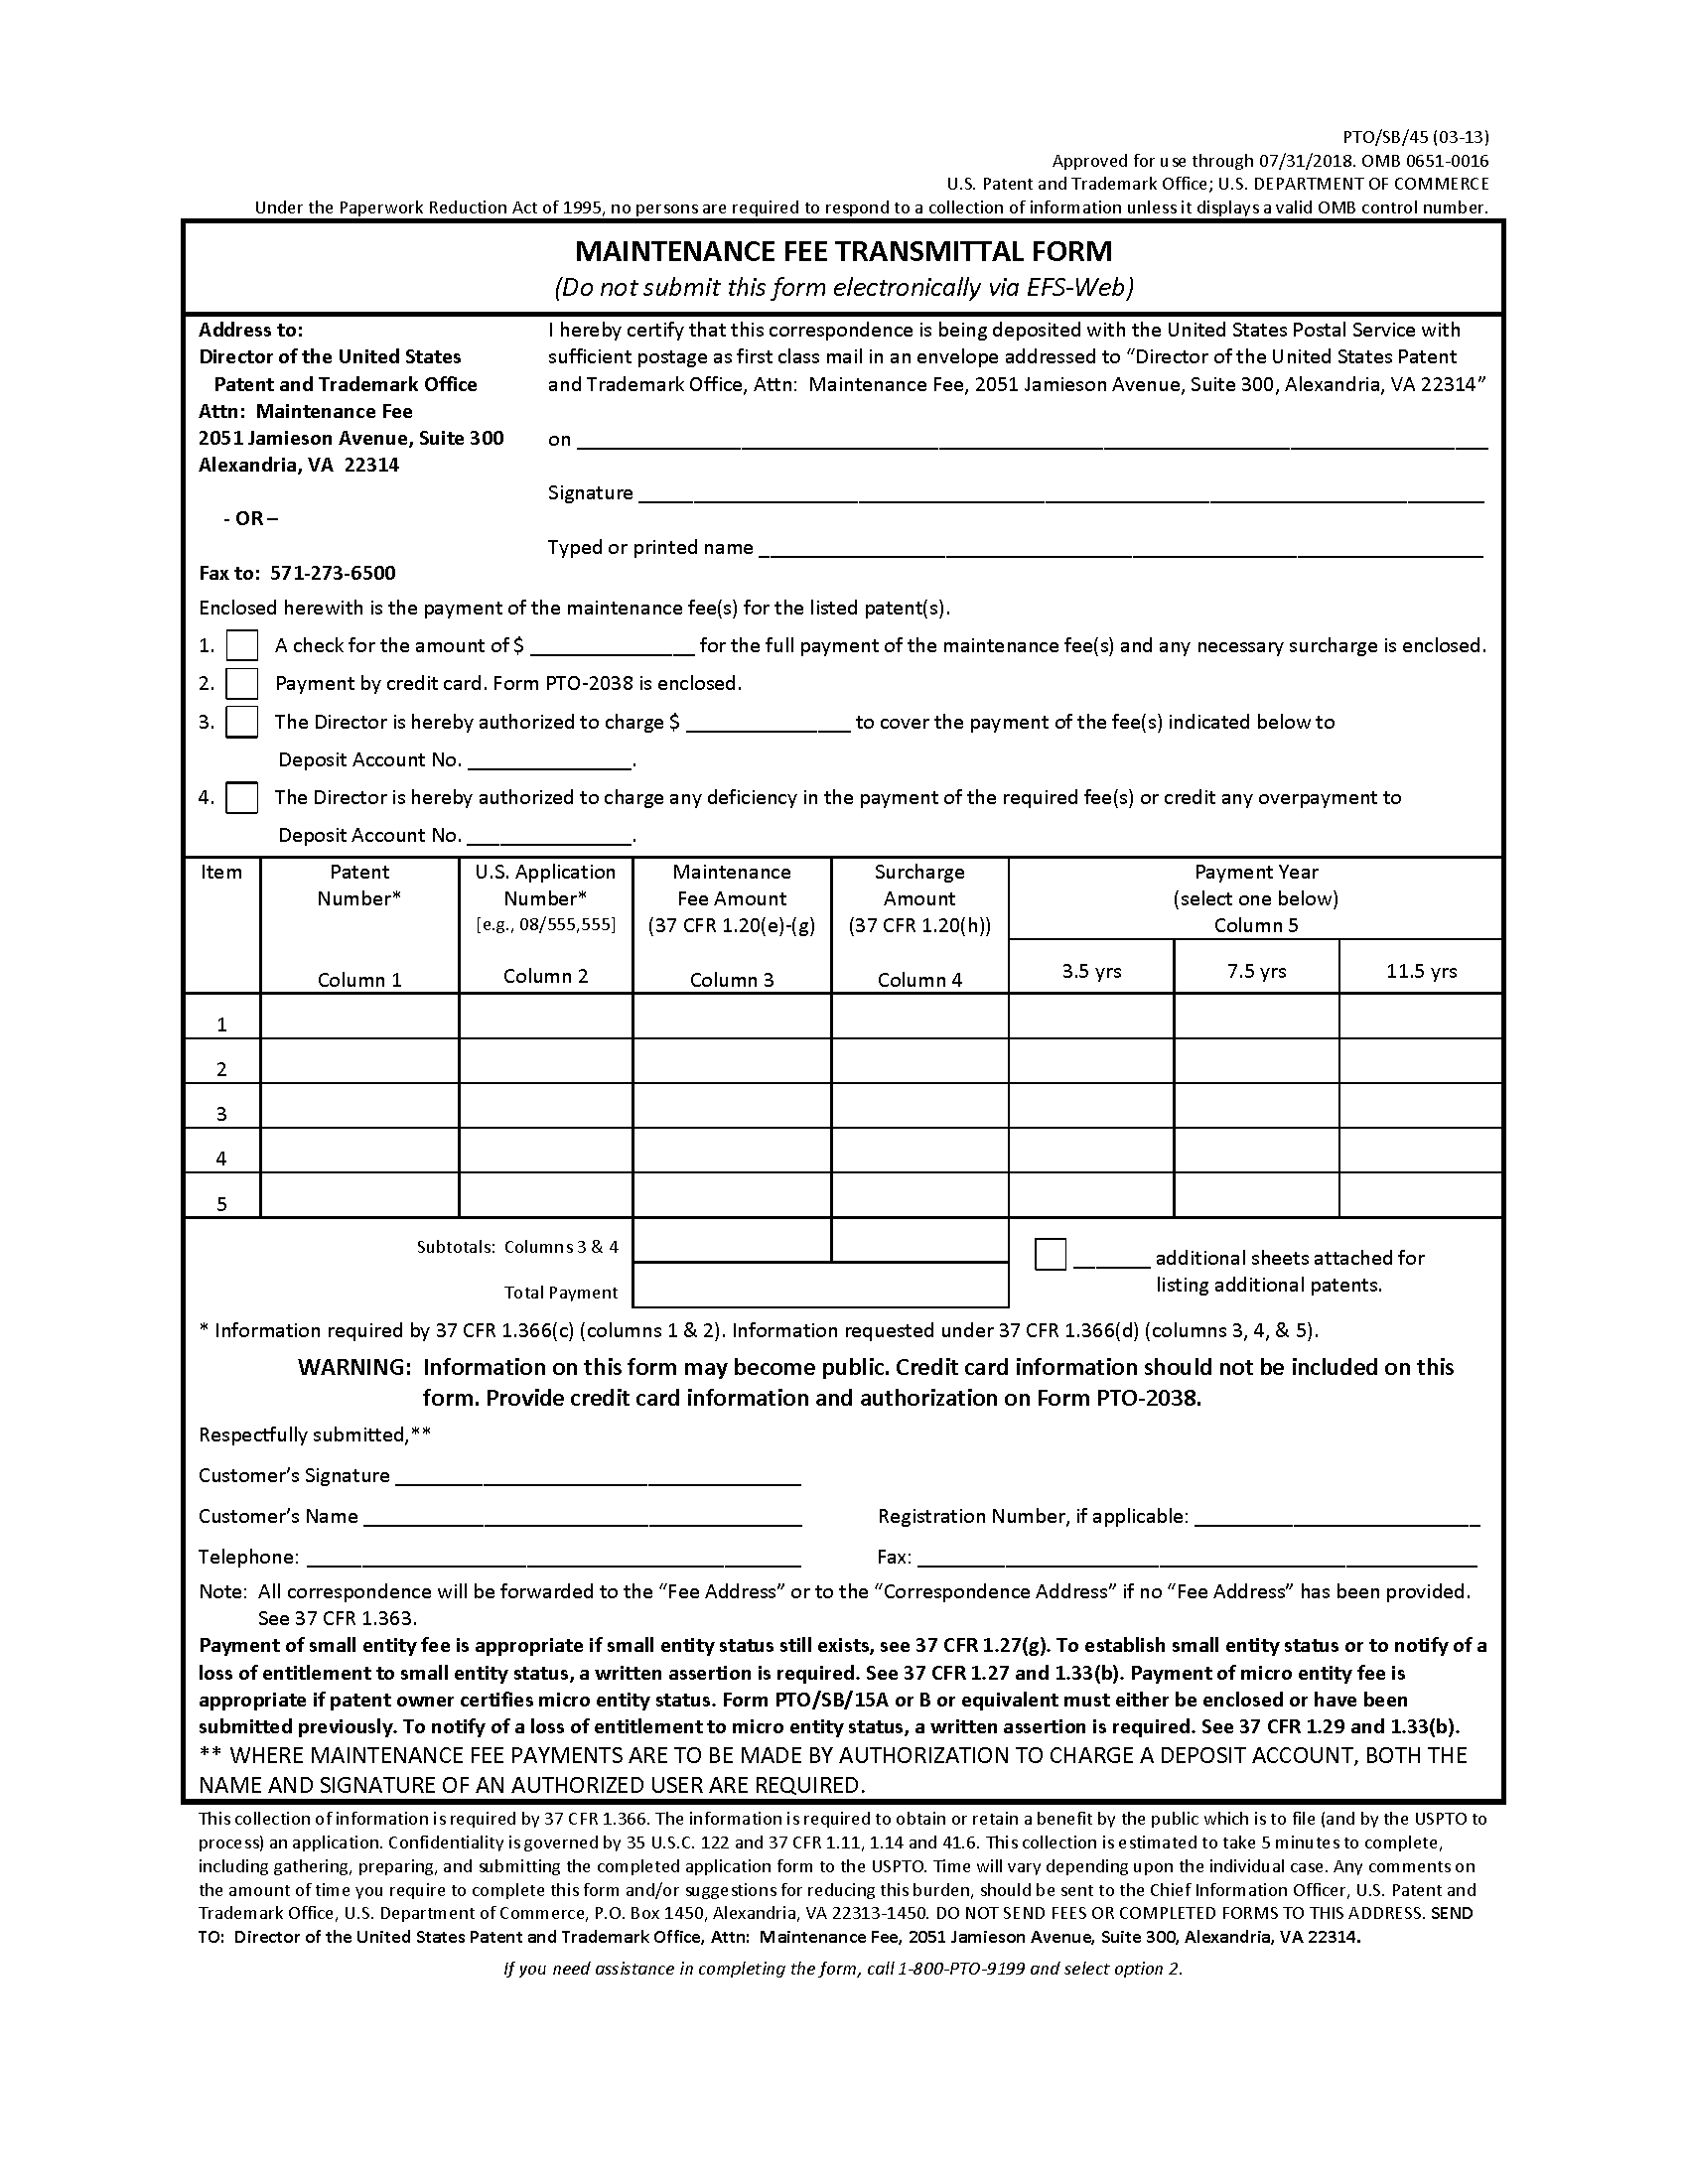 Mpep 2595 Forms Jan 2018 Bitlaw